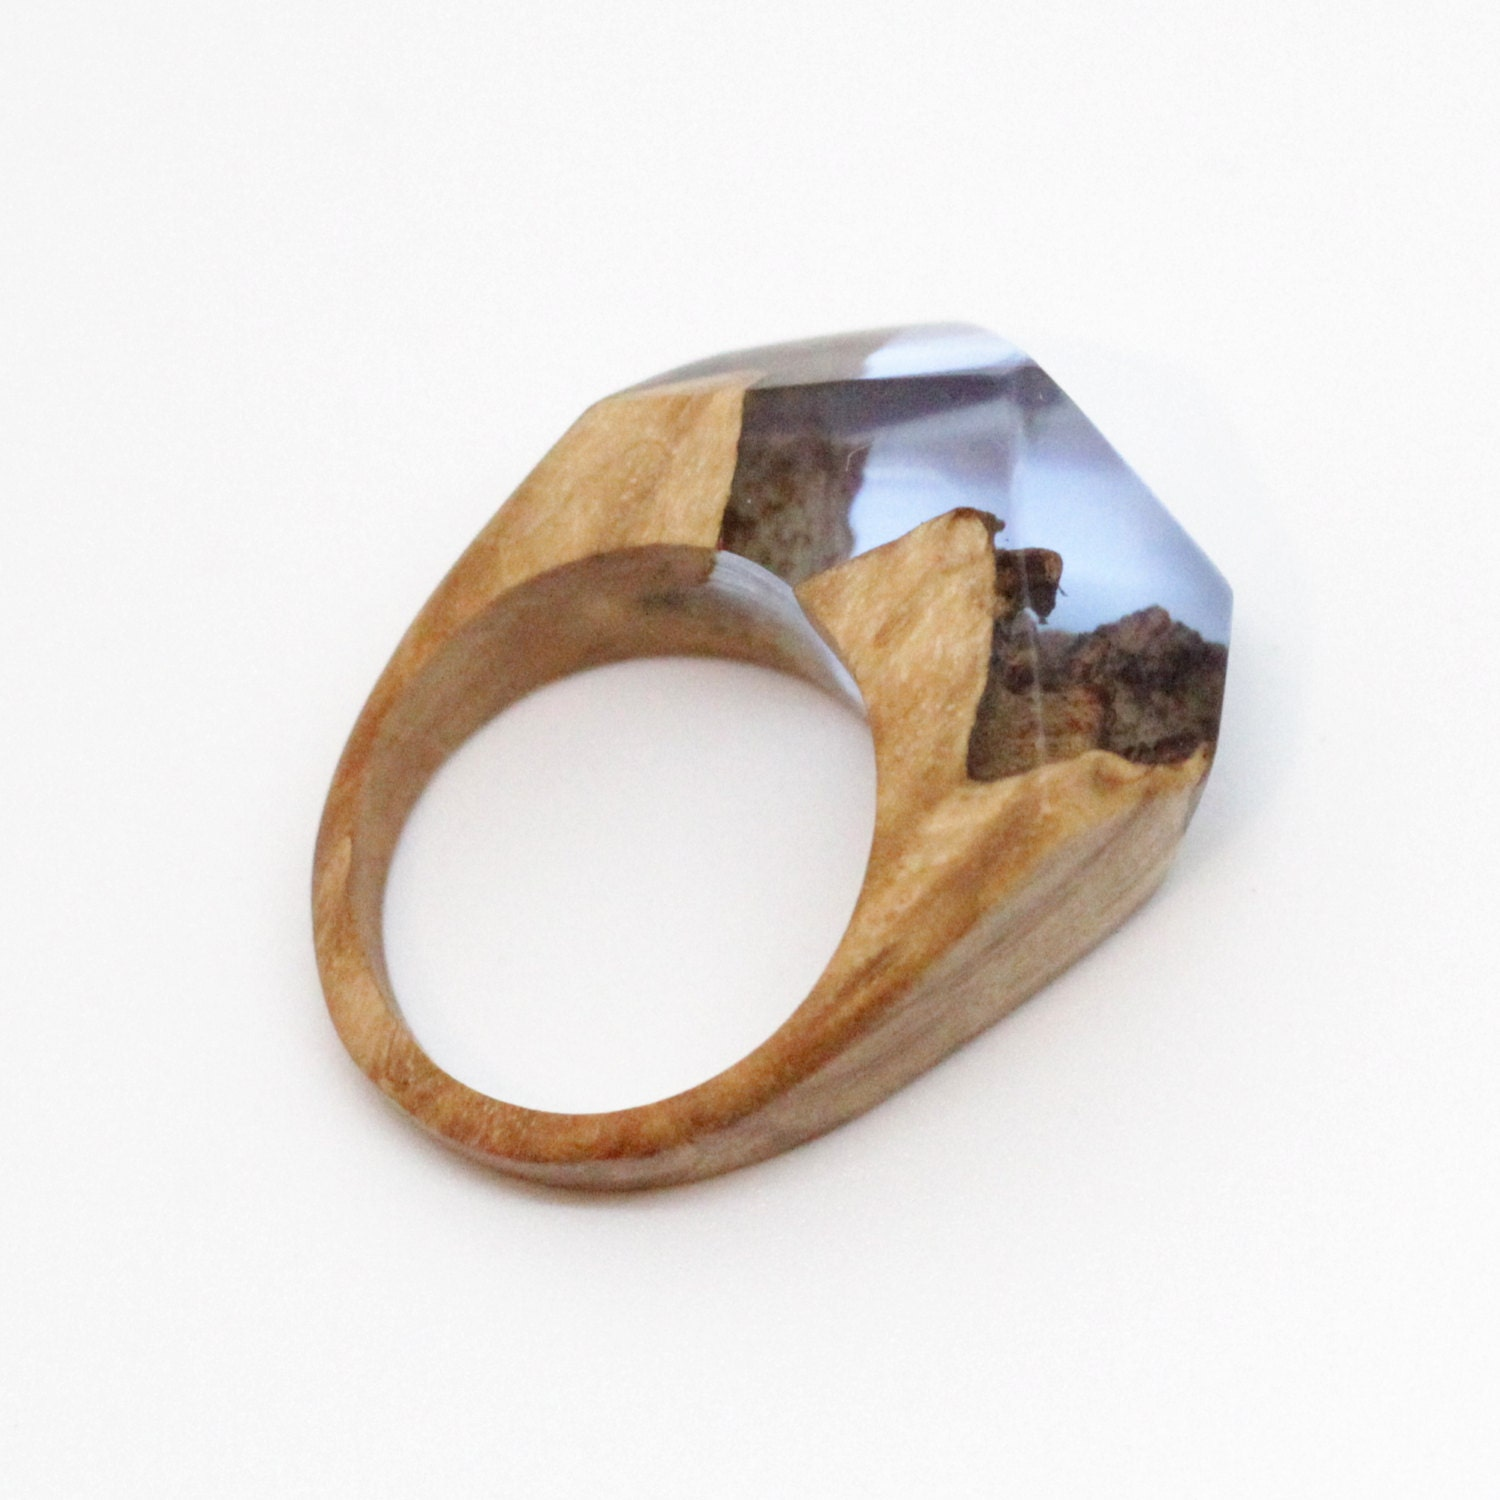 wood resin ring wood and resin ring statement by artfulresin. Black Bedroom Furniture Sets. Home Design Ideas